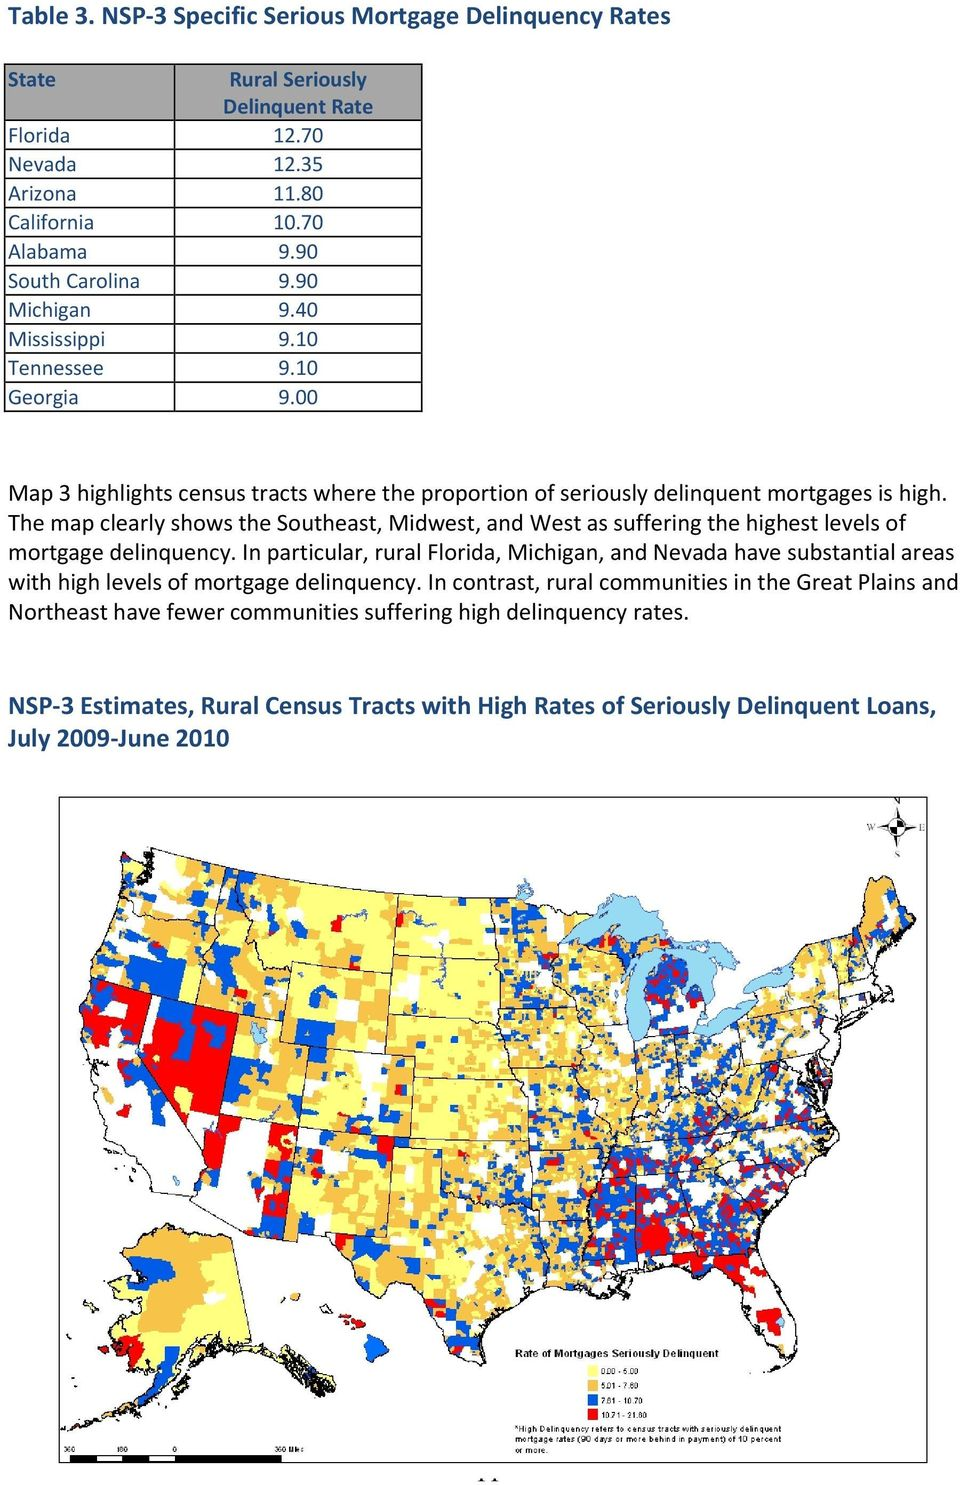 The map clearly shows the Southeast, Midwest, and West as suffering the highest levels of mortgage delinquency.